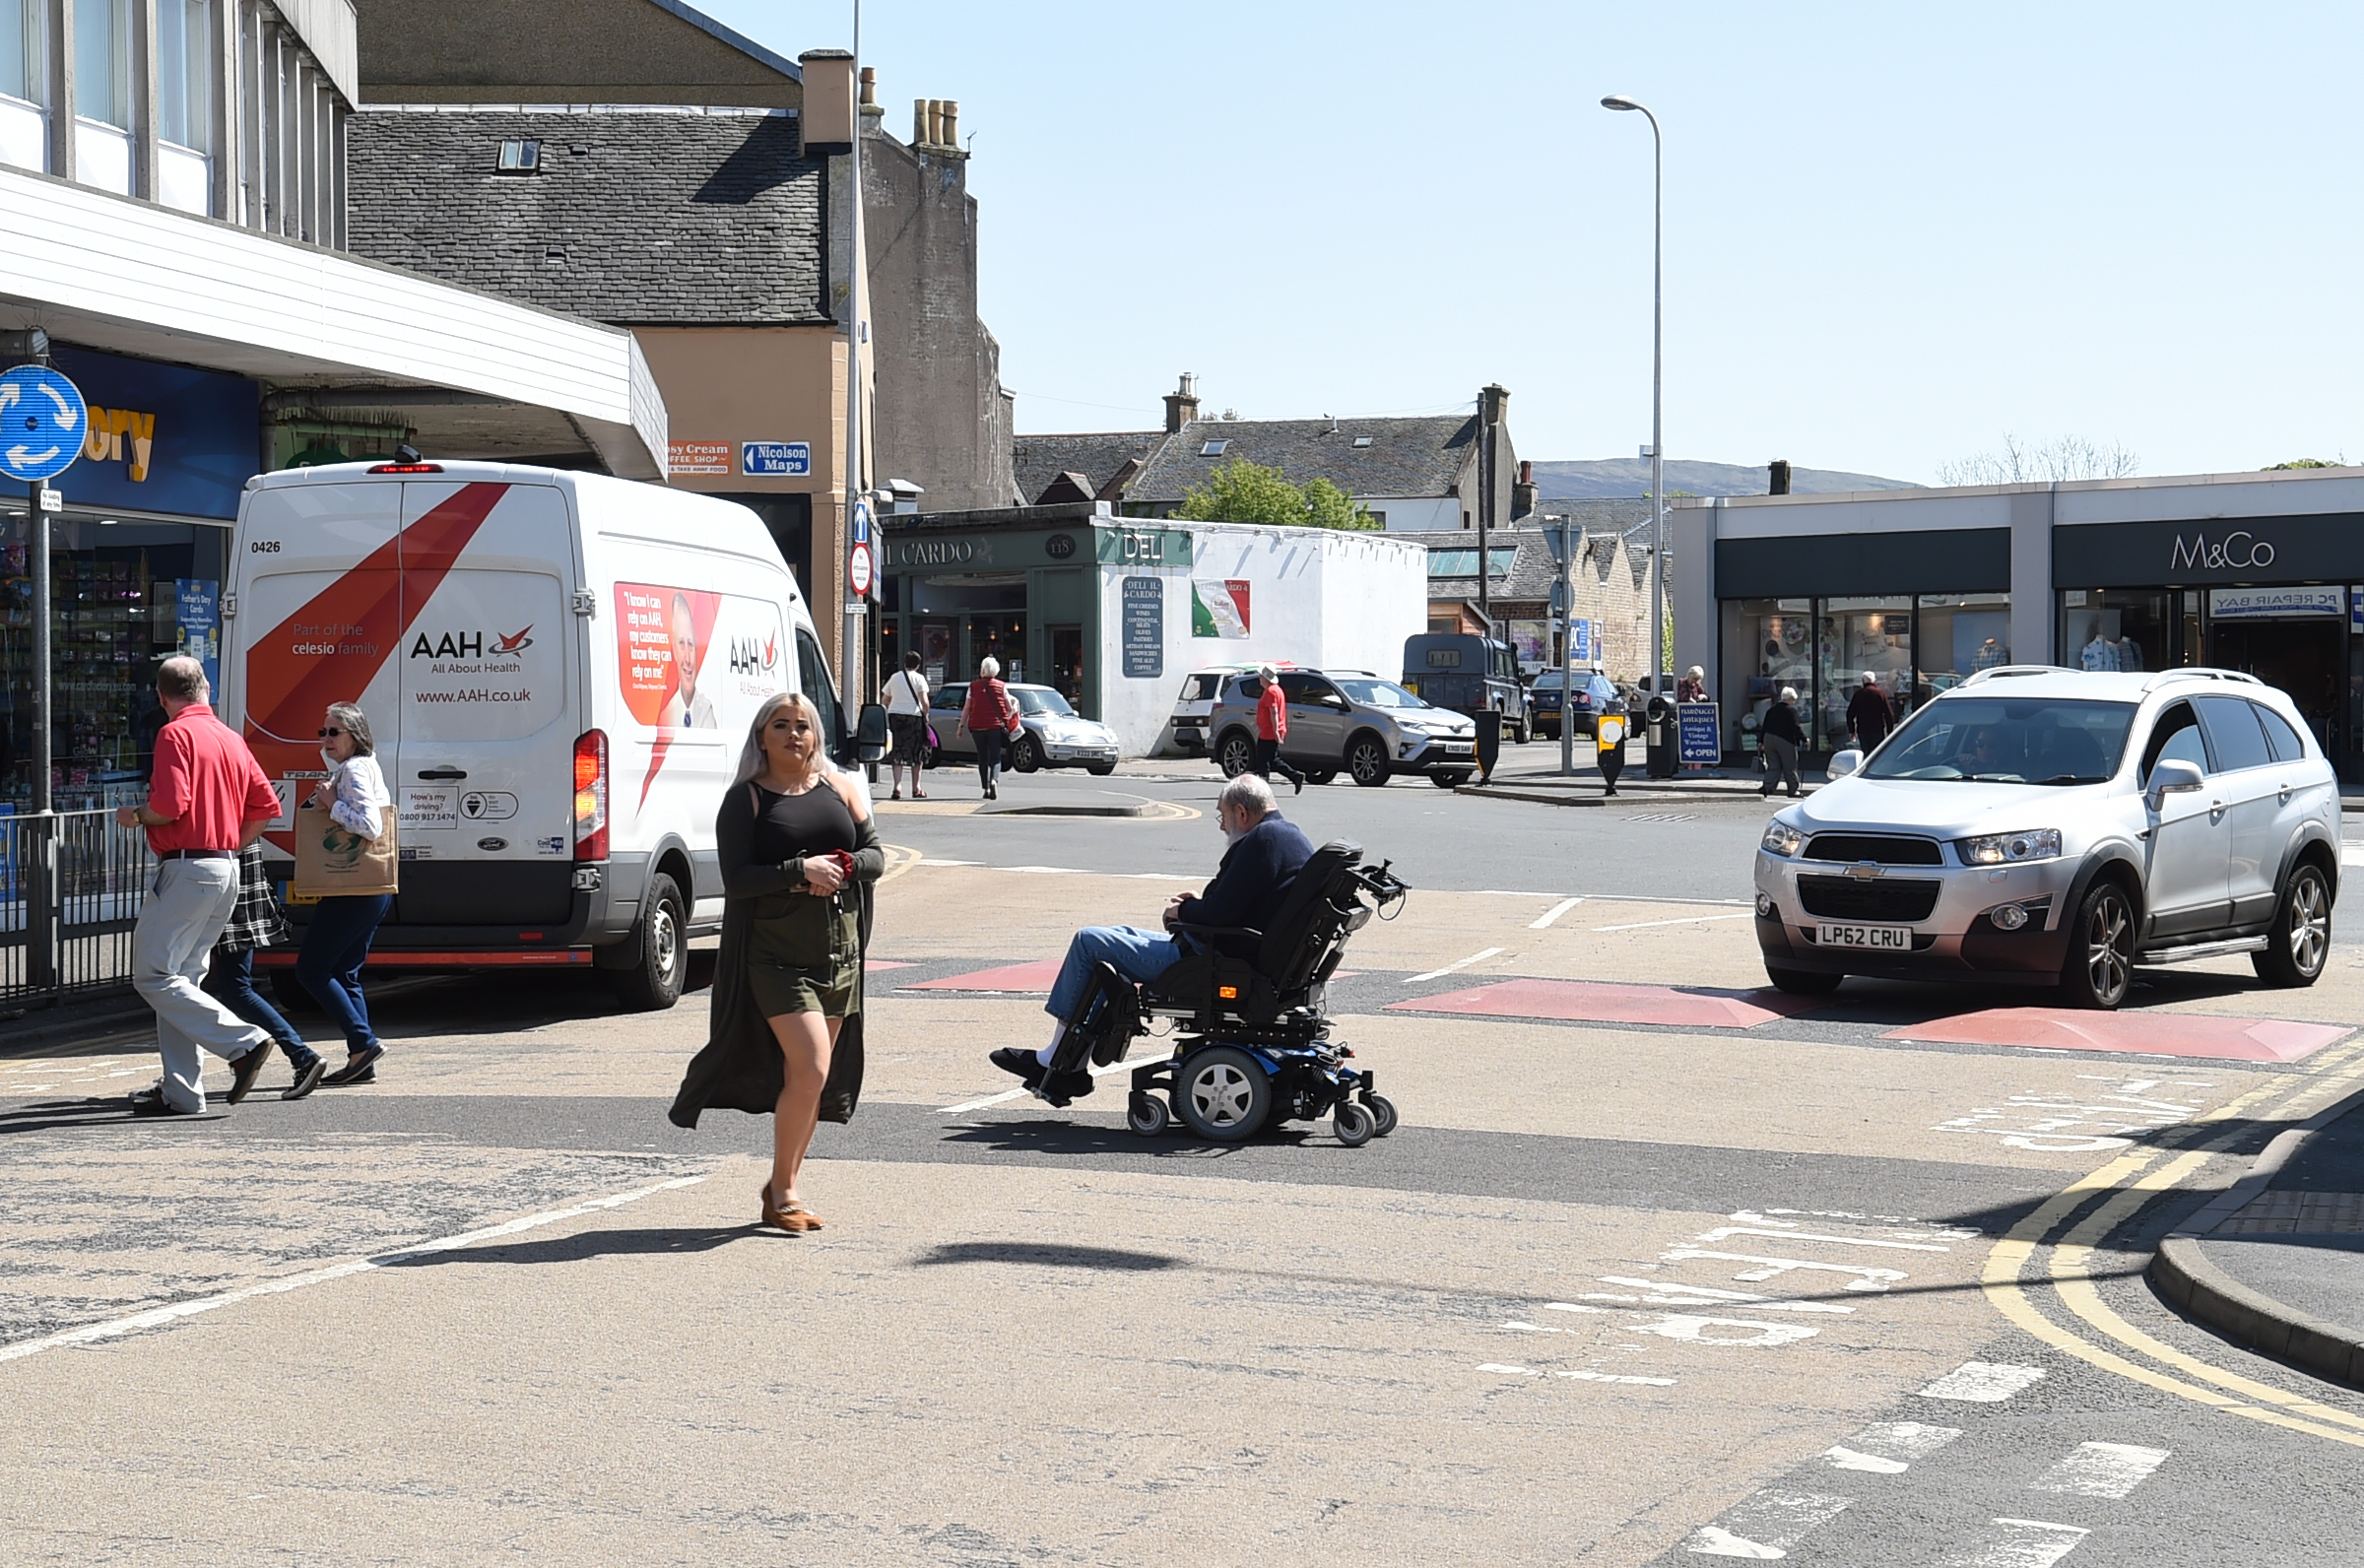 Traffic/crossing problems at Largs ,Main St roundabout.